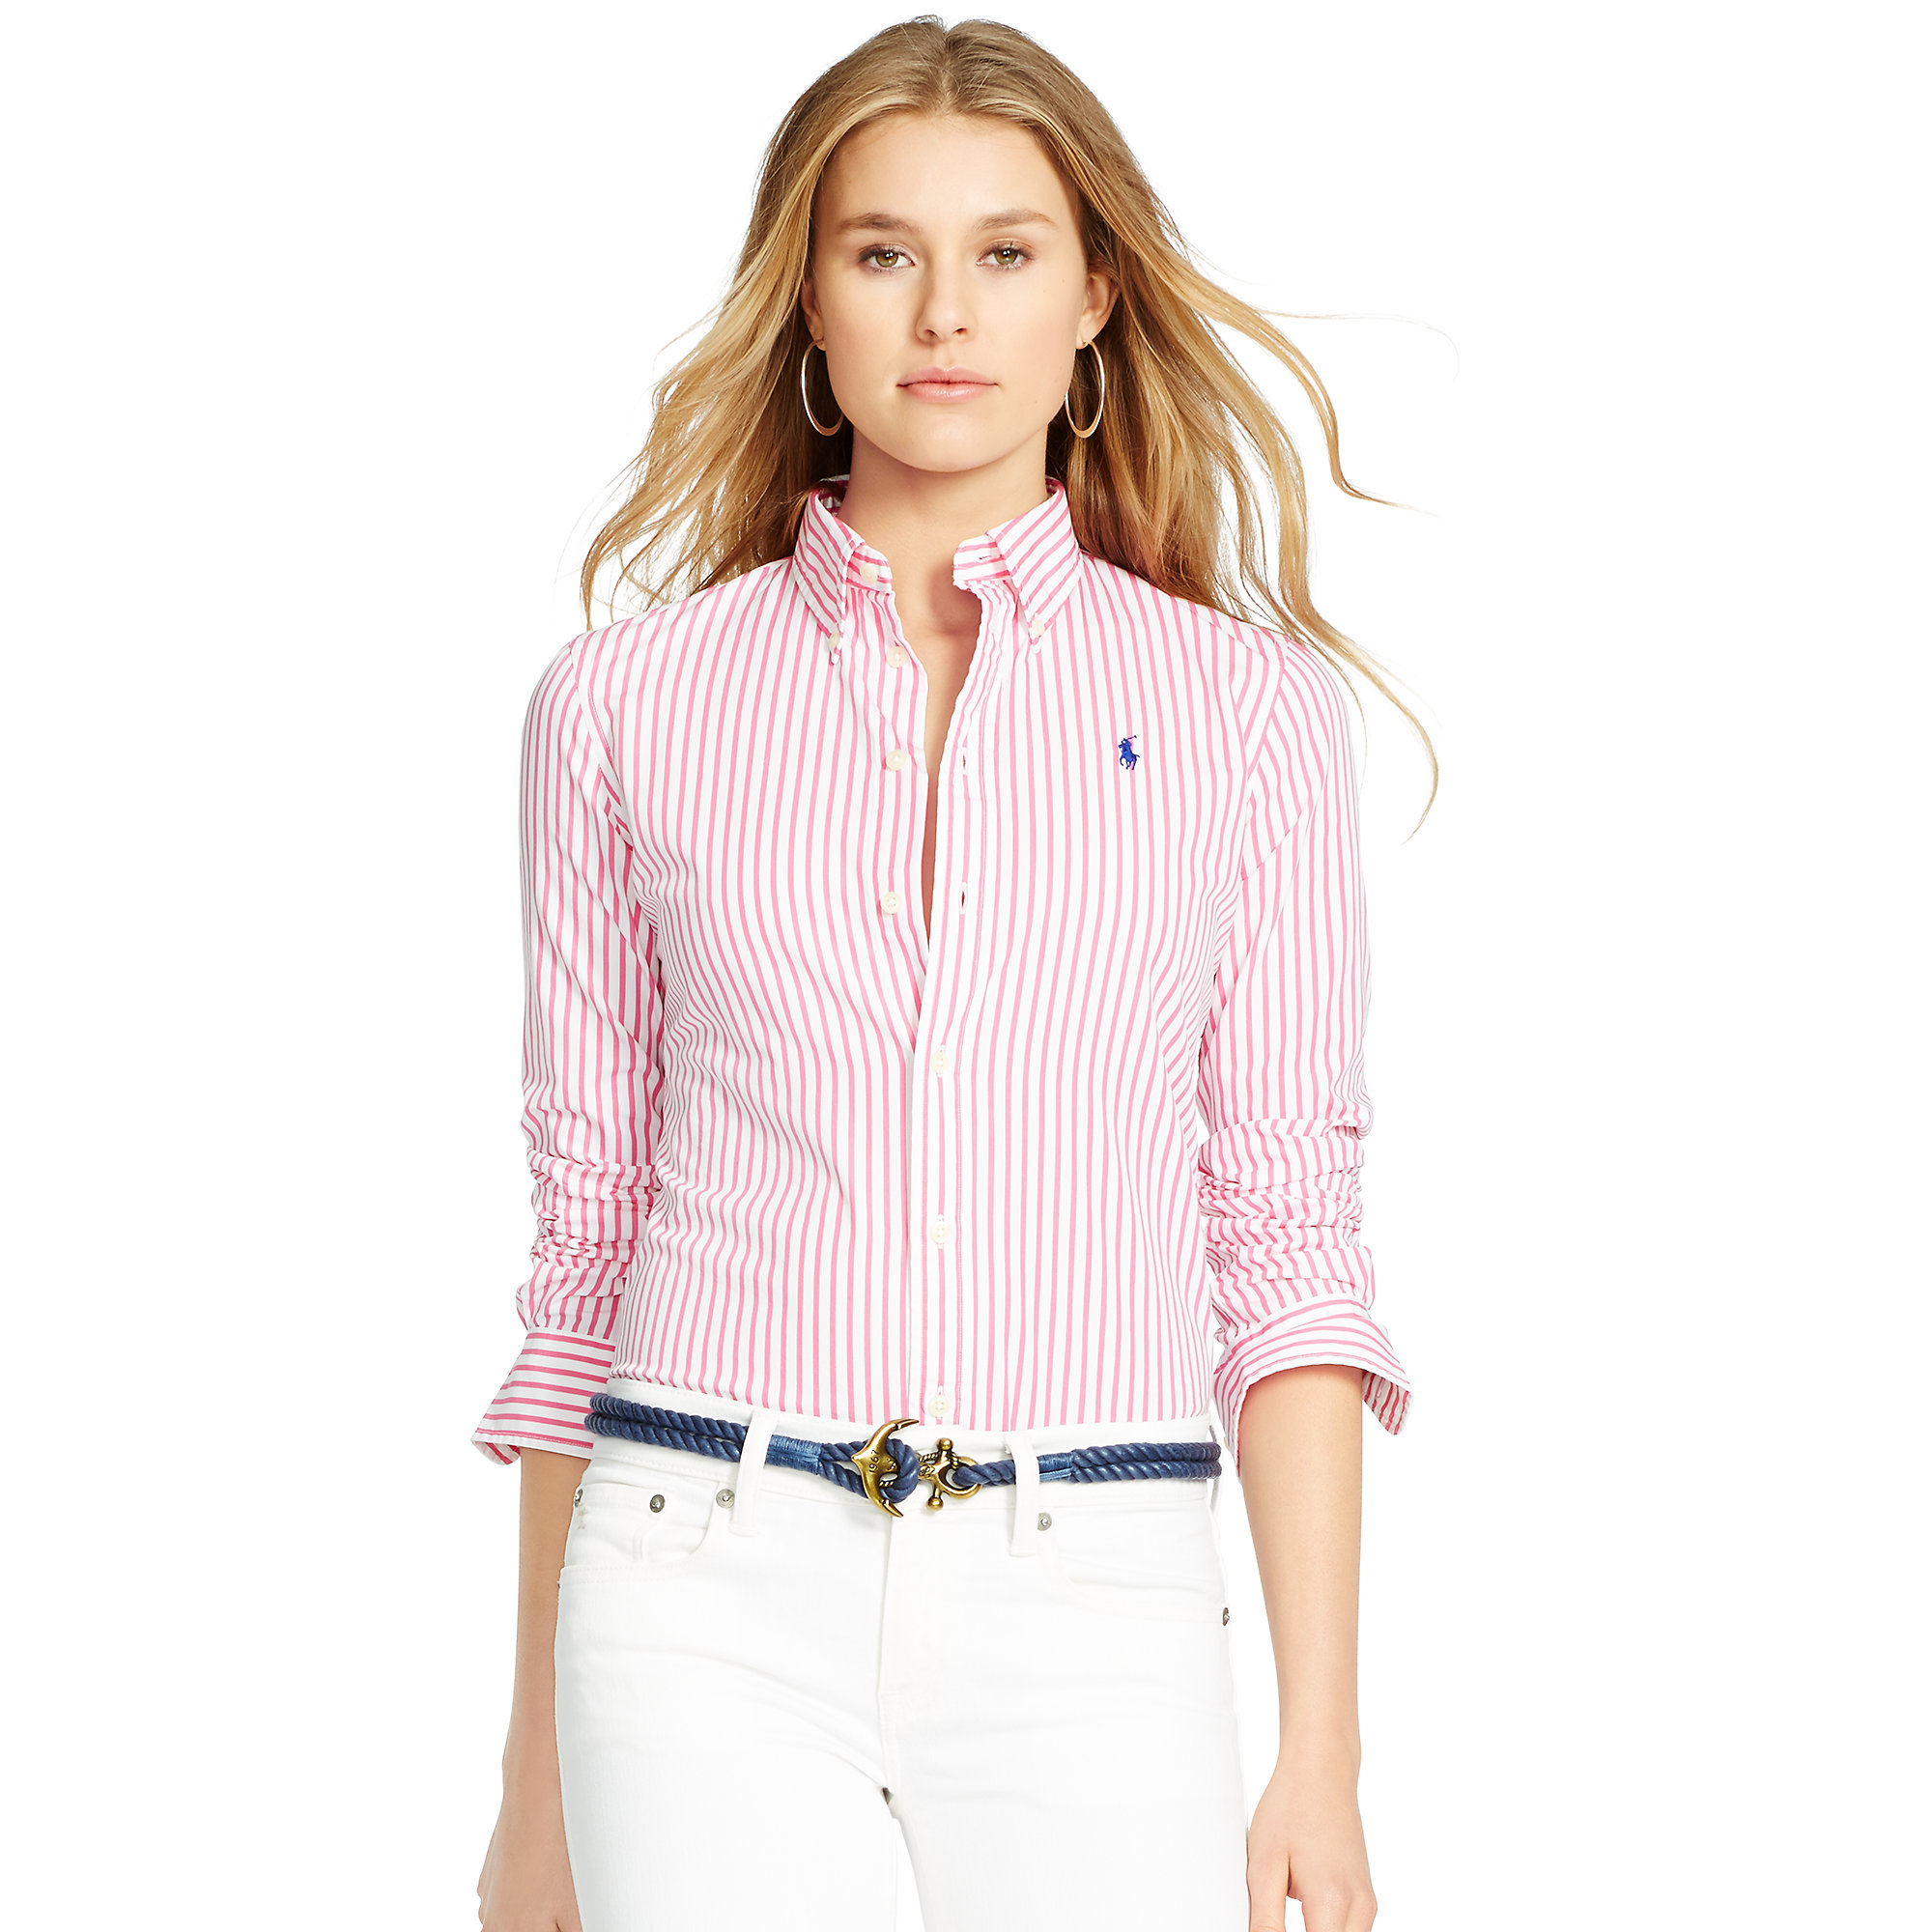 872f5a097 Polo Ralph Lauren Custom-fit Striped Shirt in Pink - Lyst